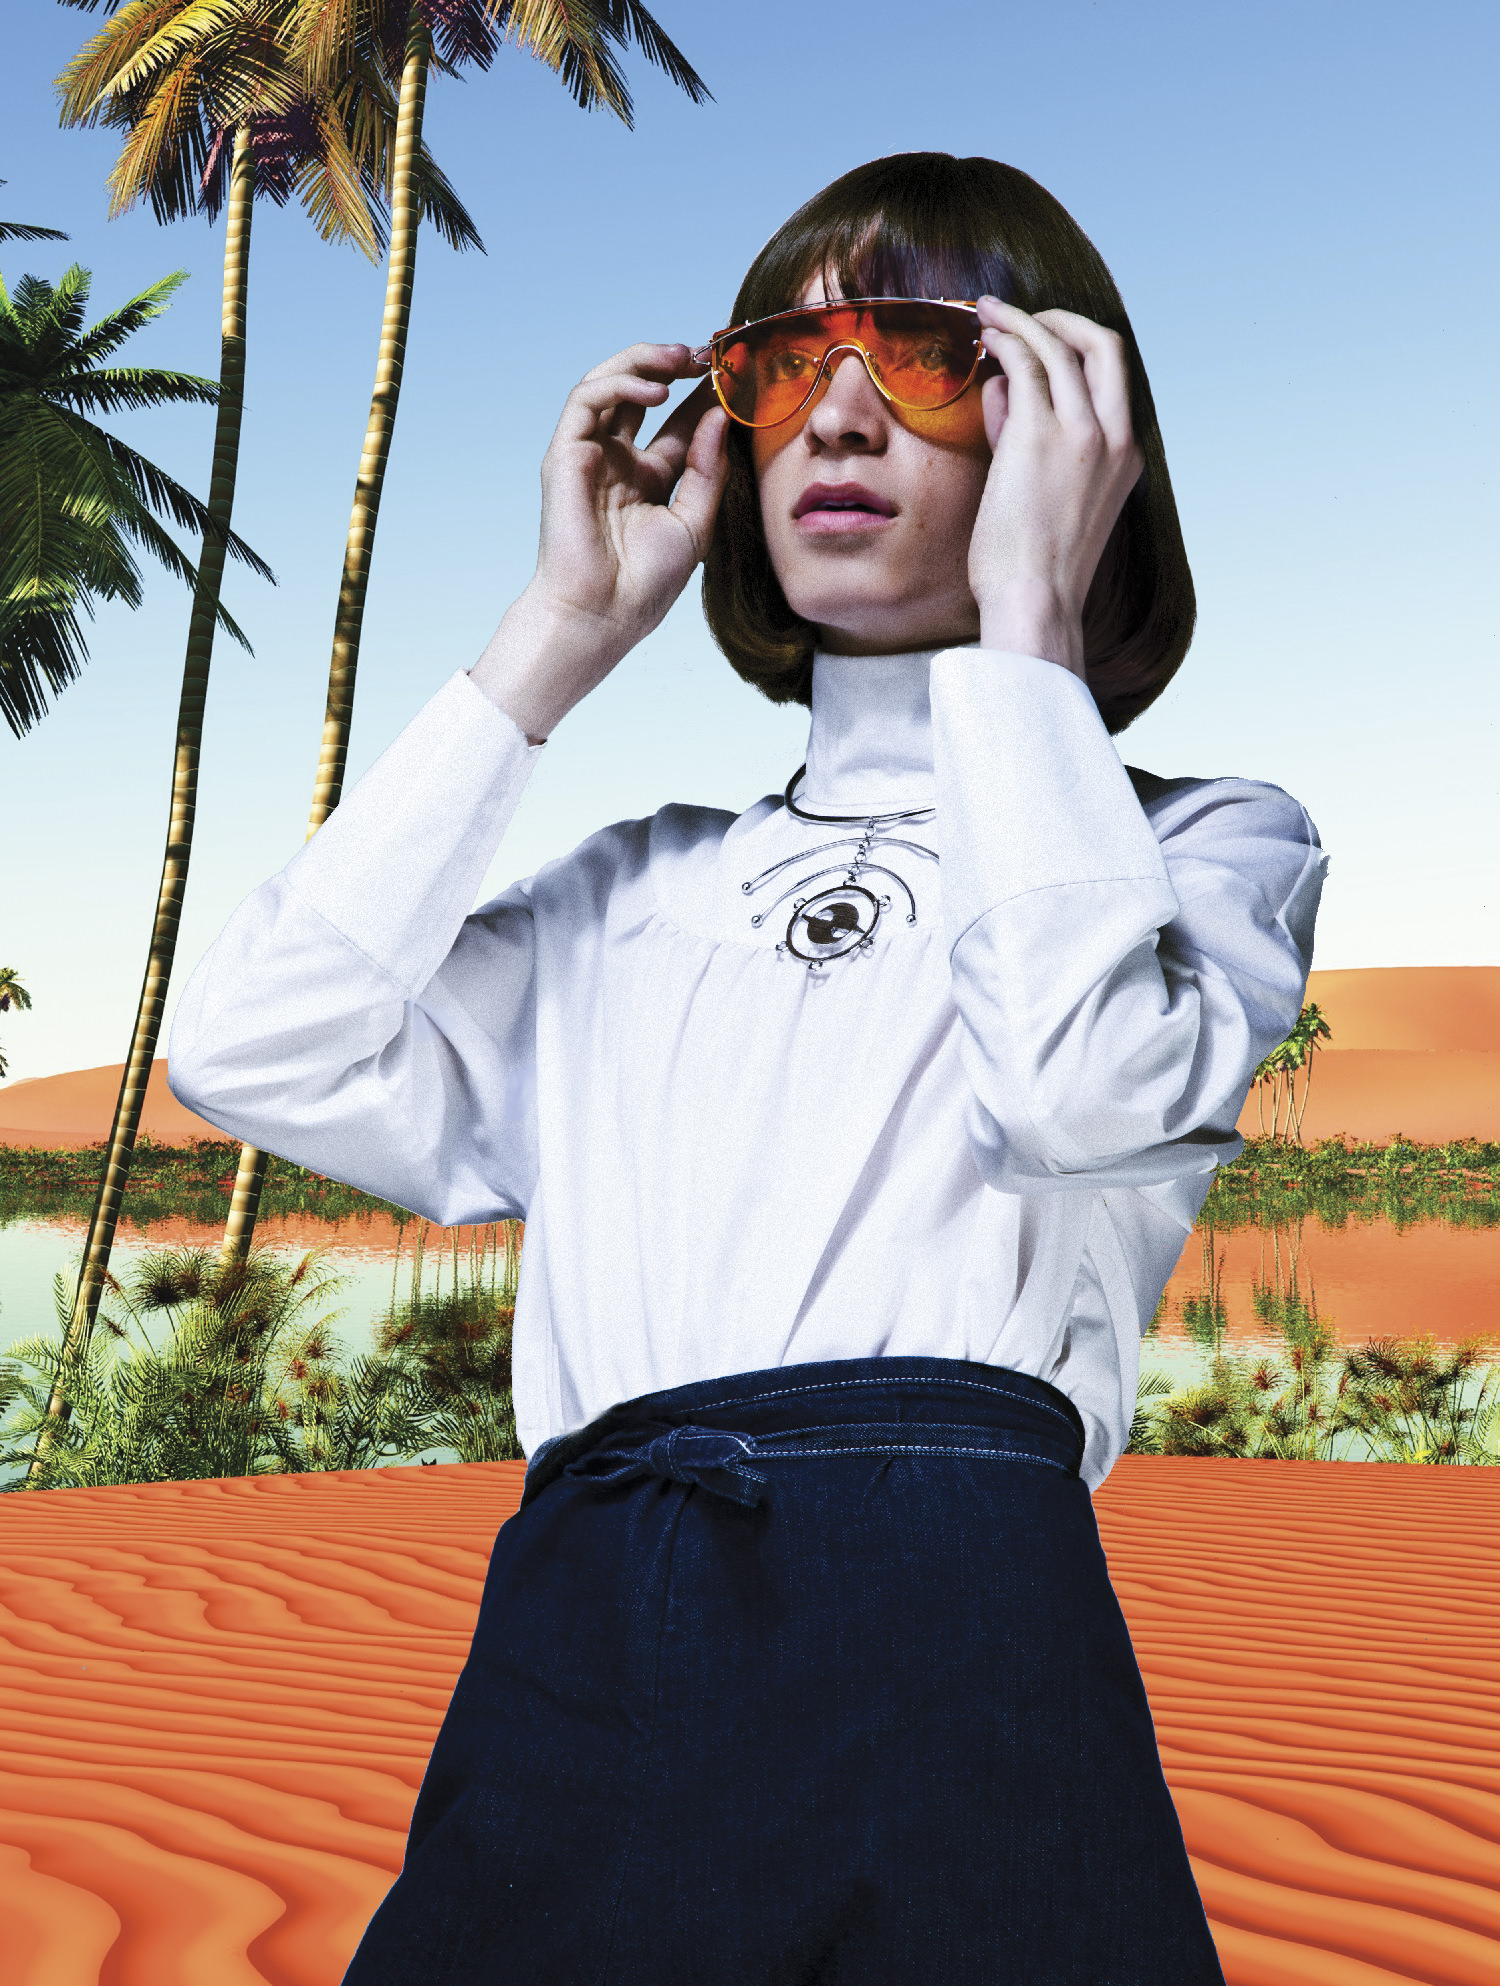 @meetkaotto wearing sunglasses by Opening Ceremony/Gentle Monster, necklace by Gypsy Sport/Chris Habana, shirts by Goen.J<br>pants by Shaina Mote